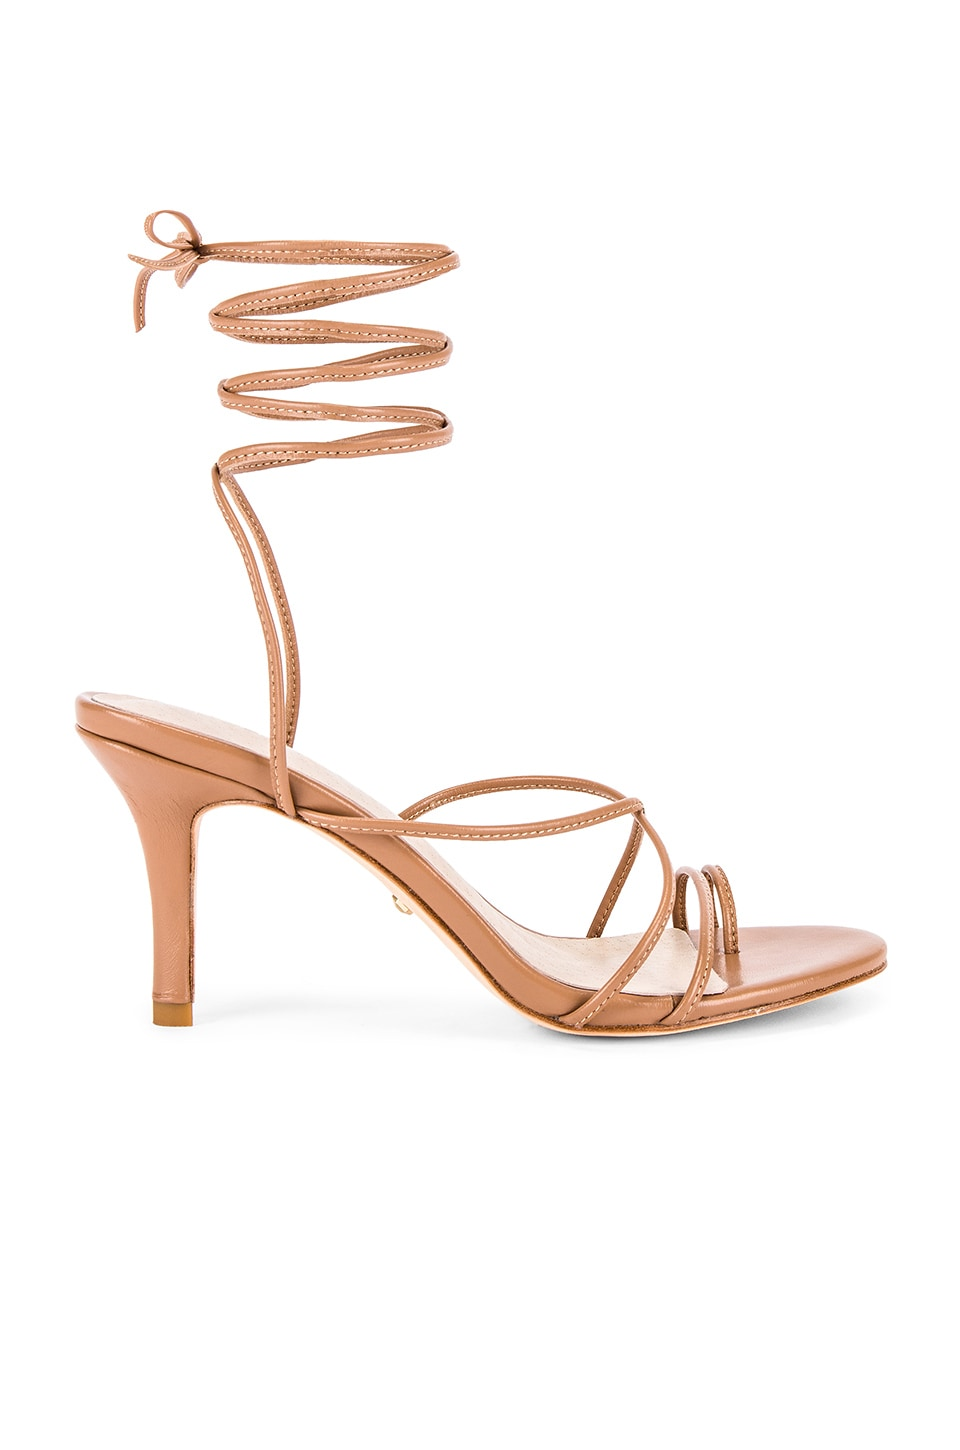 RAYE Bourbon Heel in Tan